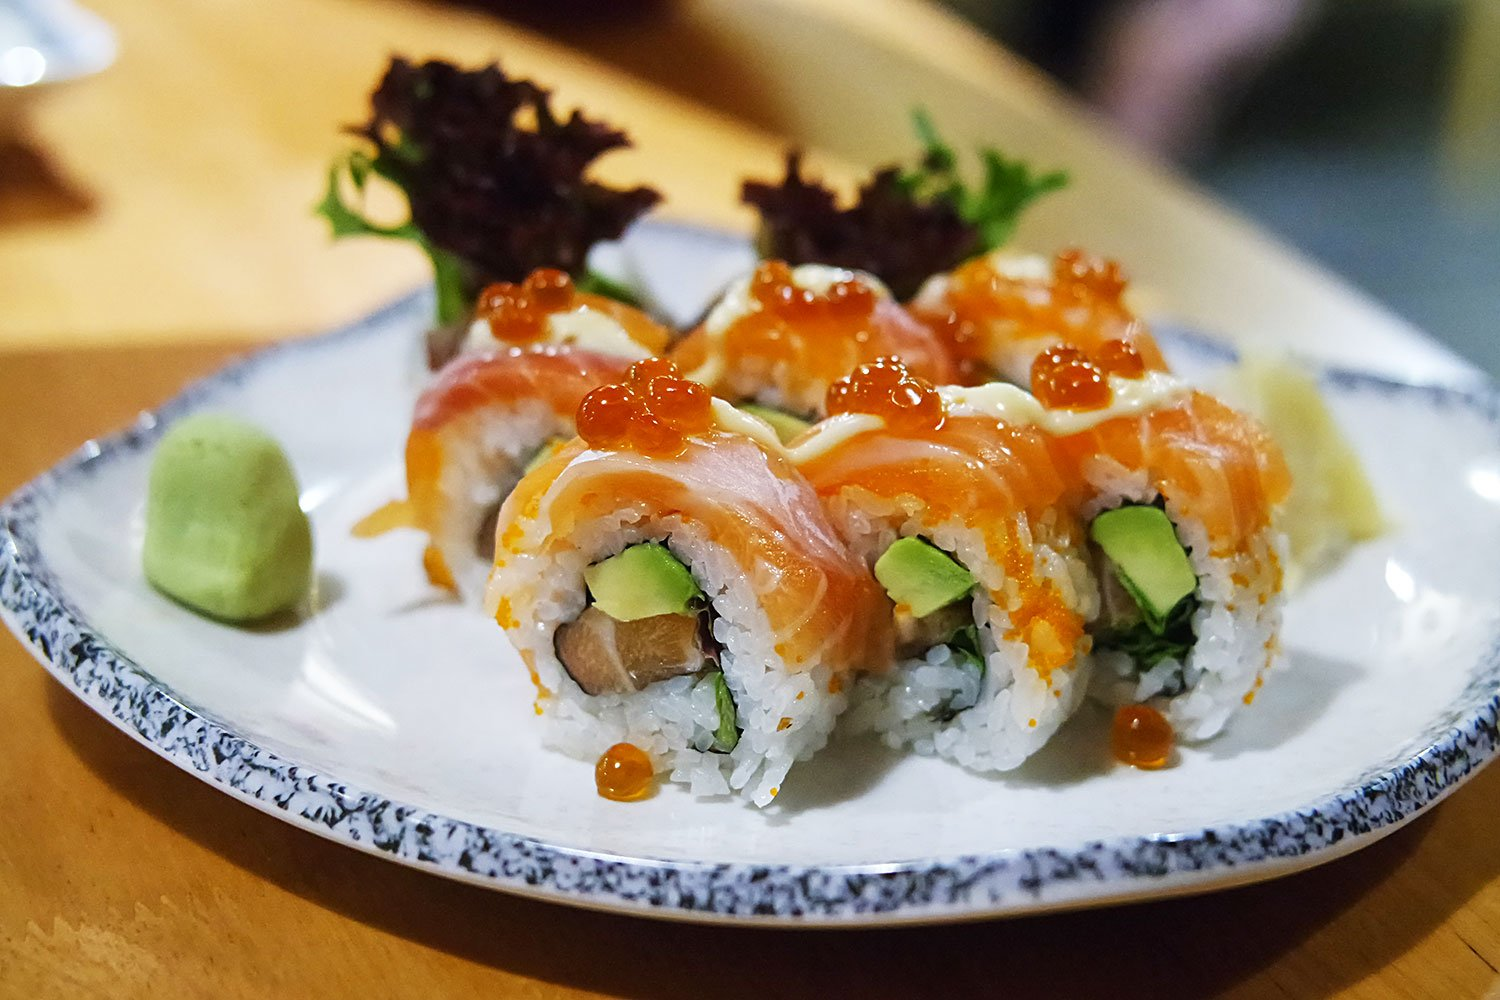 6 pieces of inside out sushi roll, filled with salmon, avocado and lettuce leaves, topped with salmon and salmon roe.